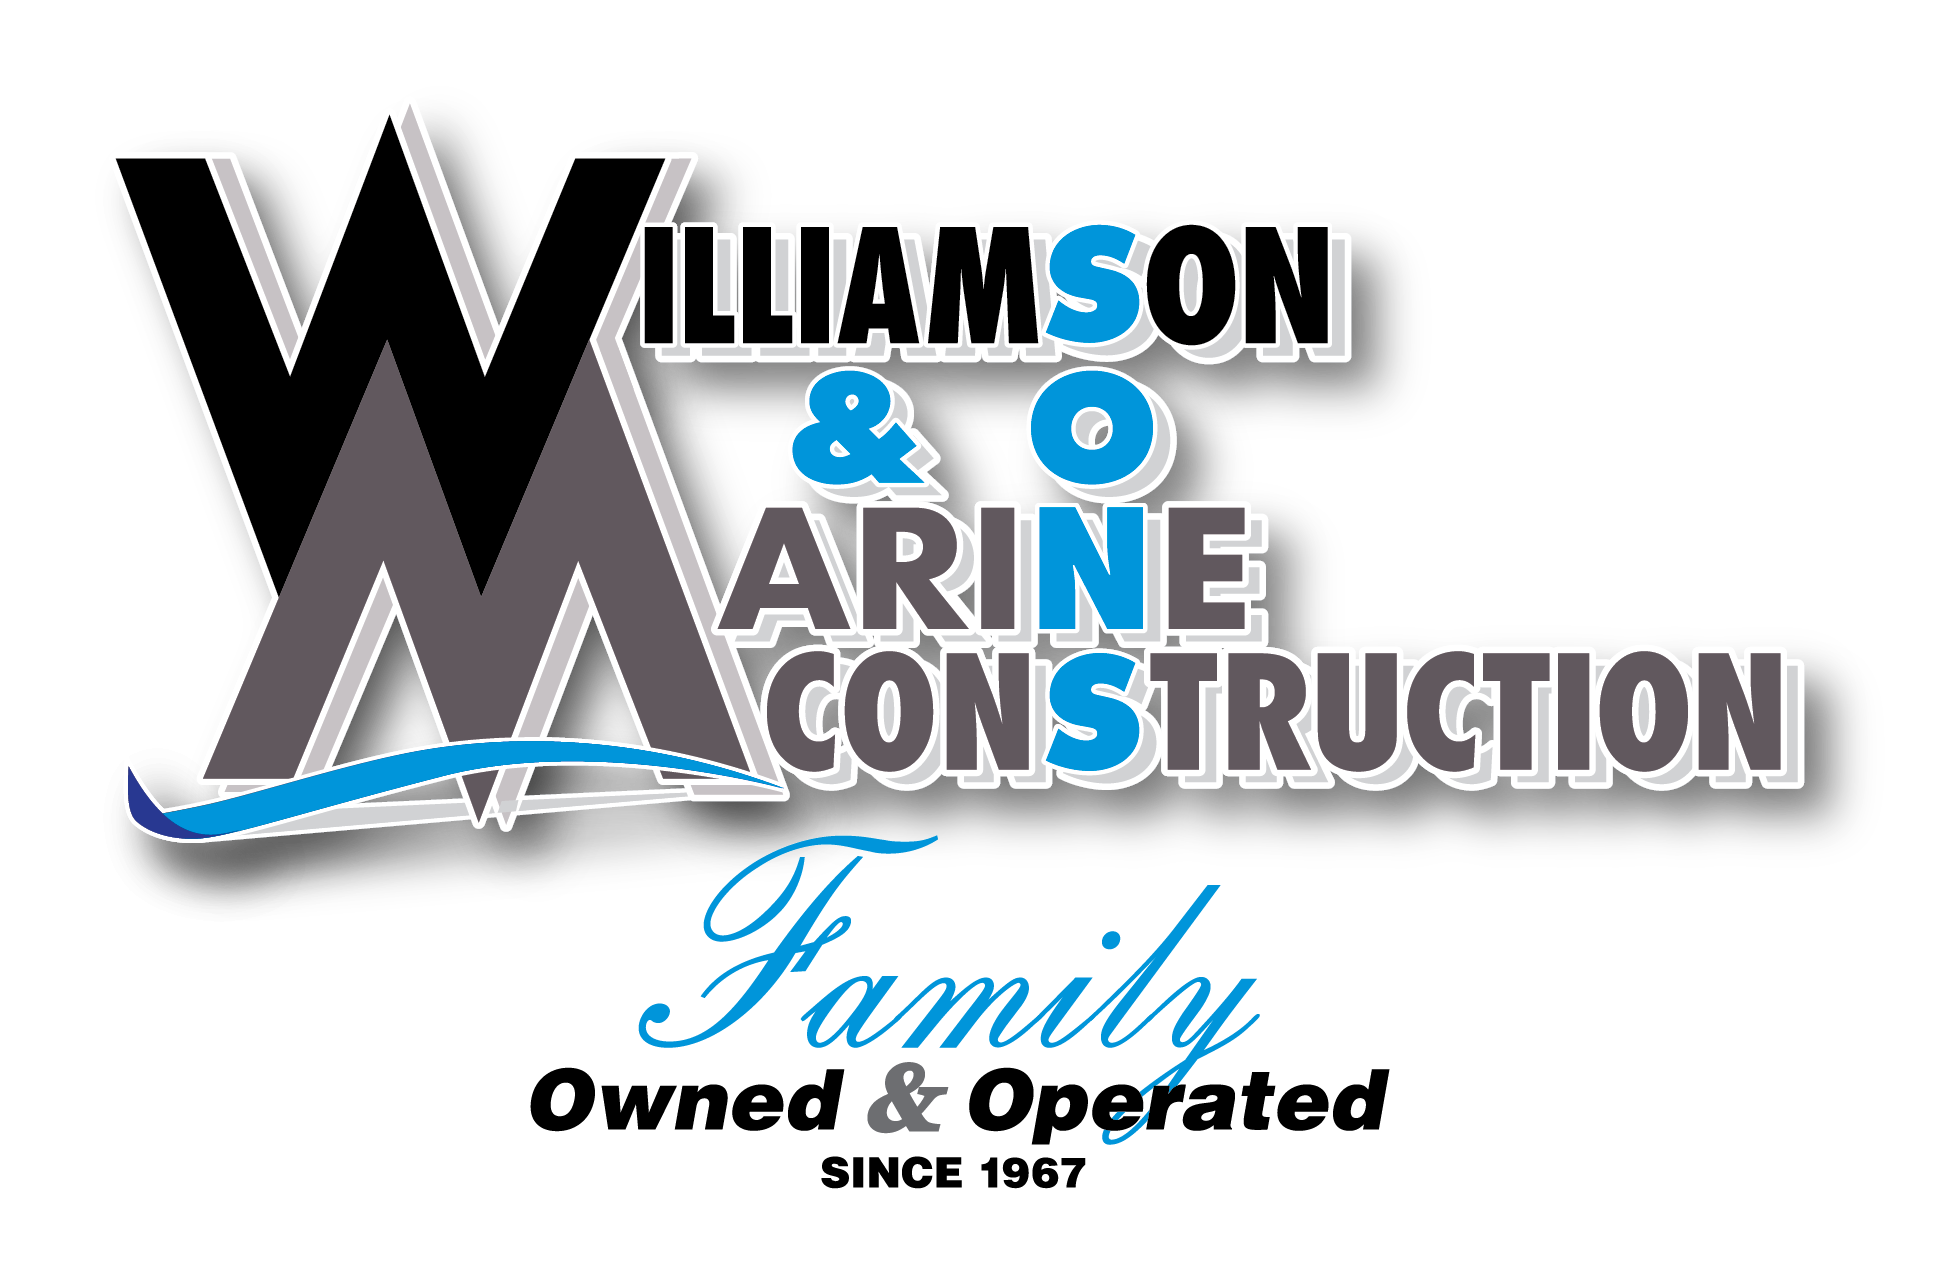 Williamson & Sons Marine Construction